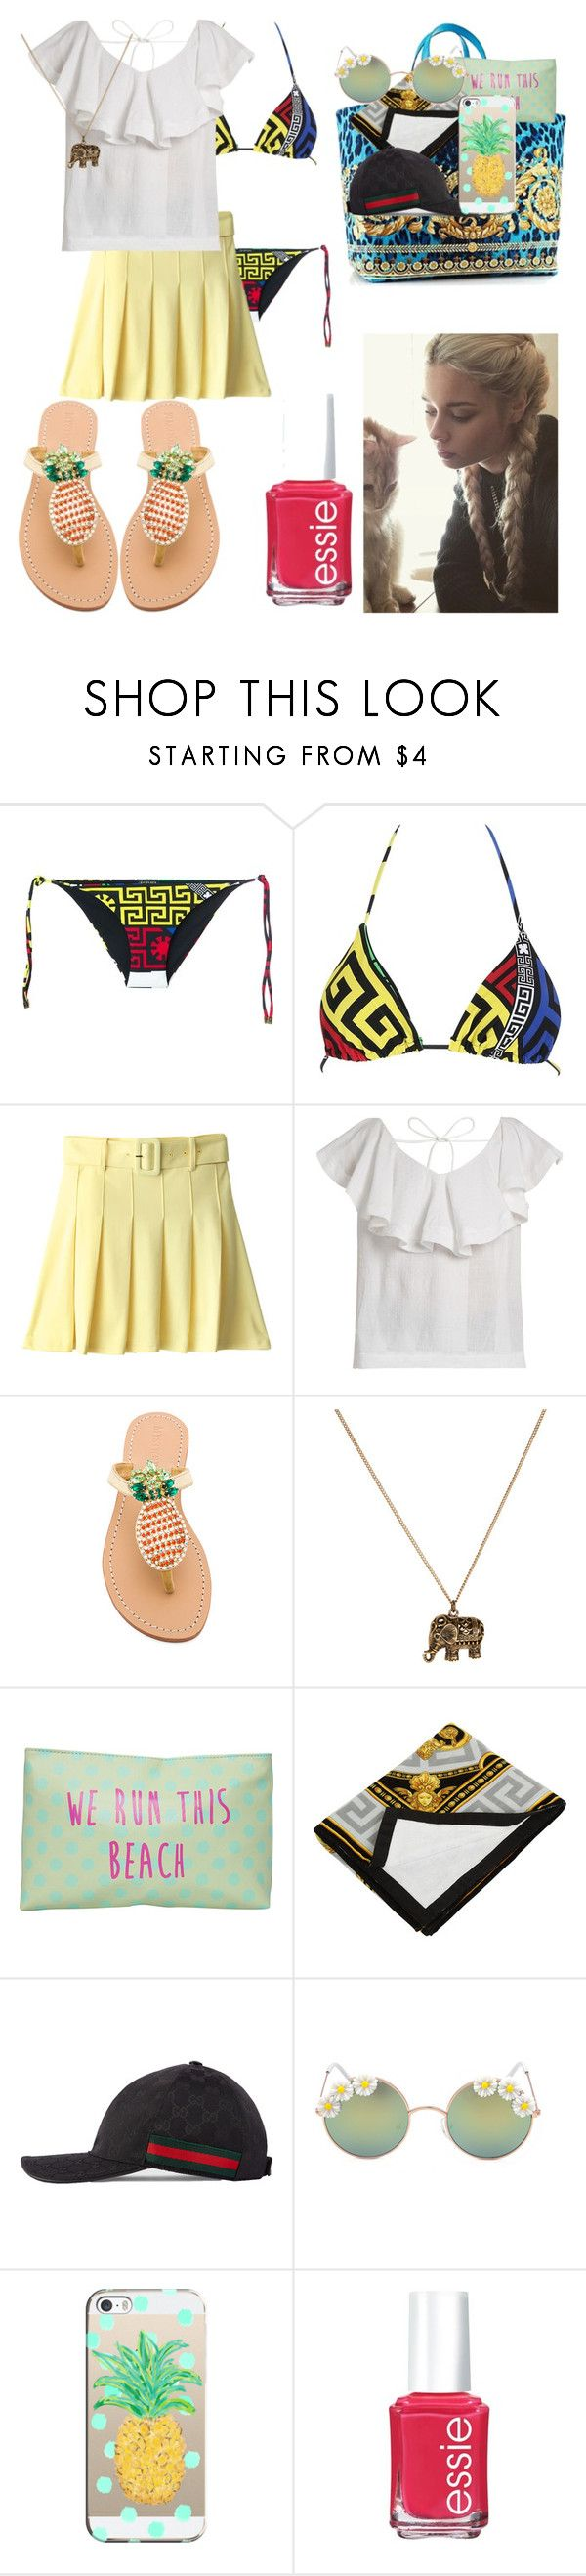 """""""fun"""" by dovelytaehyung ❤ liked on Polyvore featuring Versace, CECILIE Copenhagen, Mystique, Accessorize, T-shirt & Jeans, Gucci, Full Tilt, Casetify and Essie"""